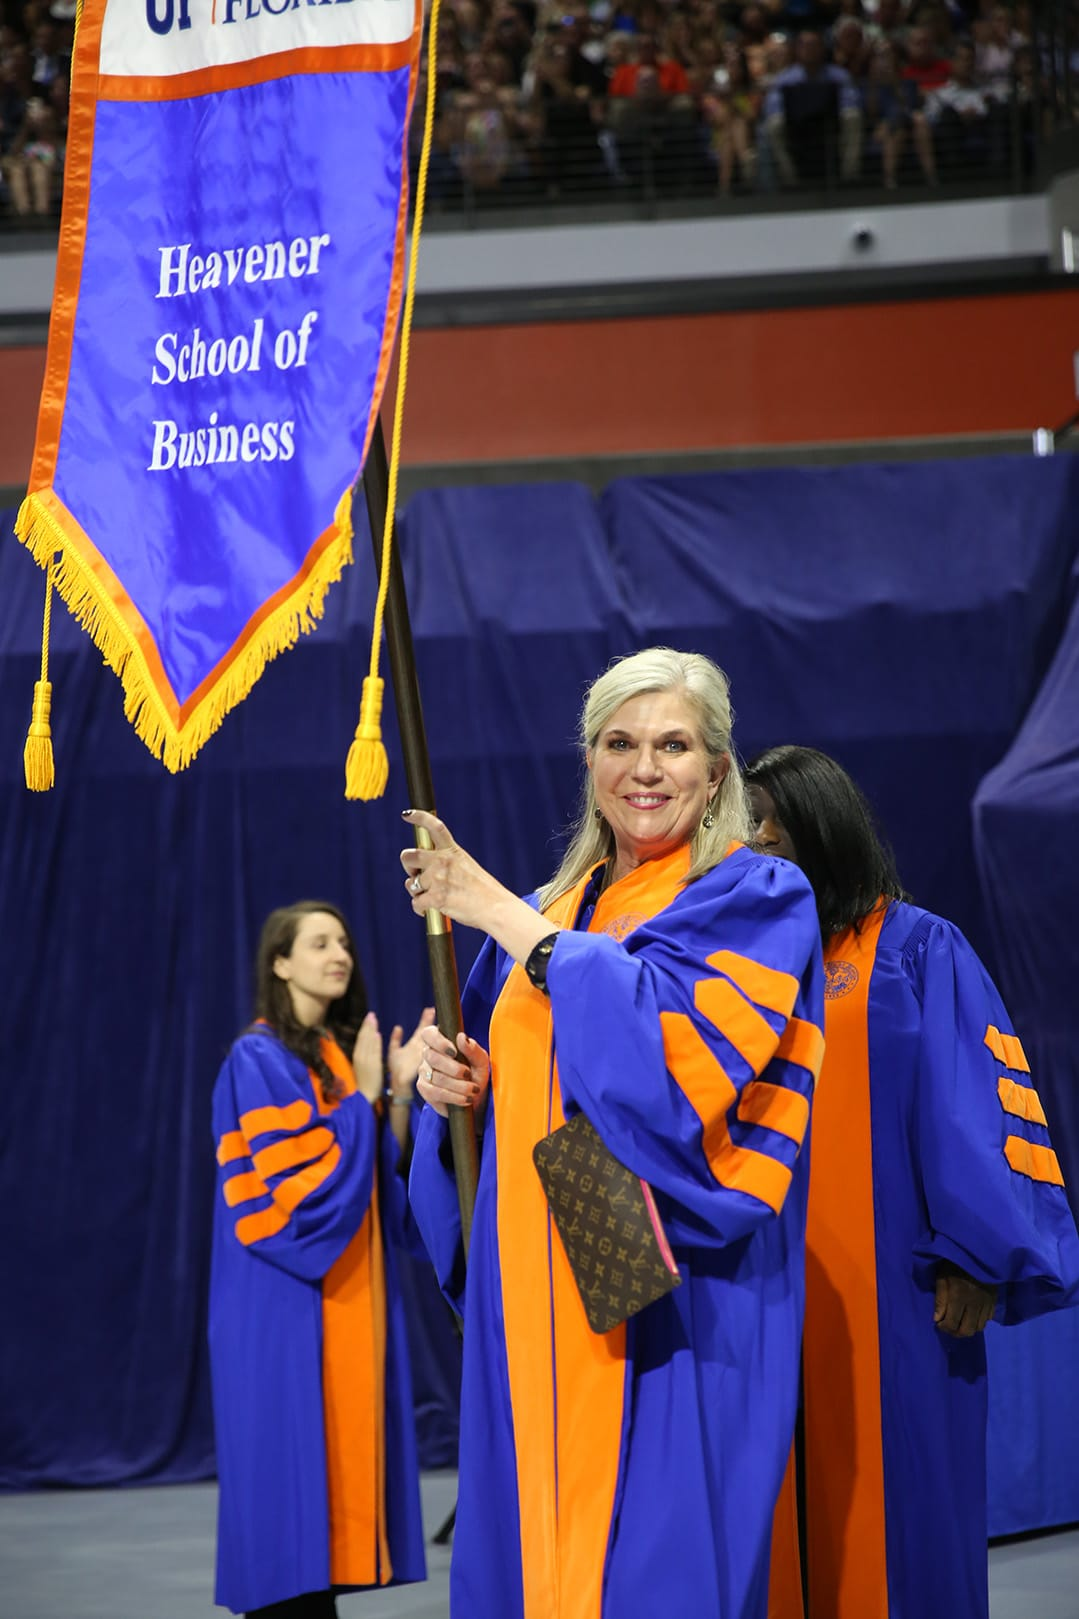 Betsy Goodman holds the Heavener School of Business flag at Commencement